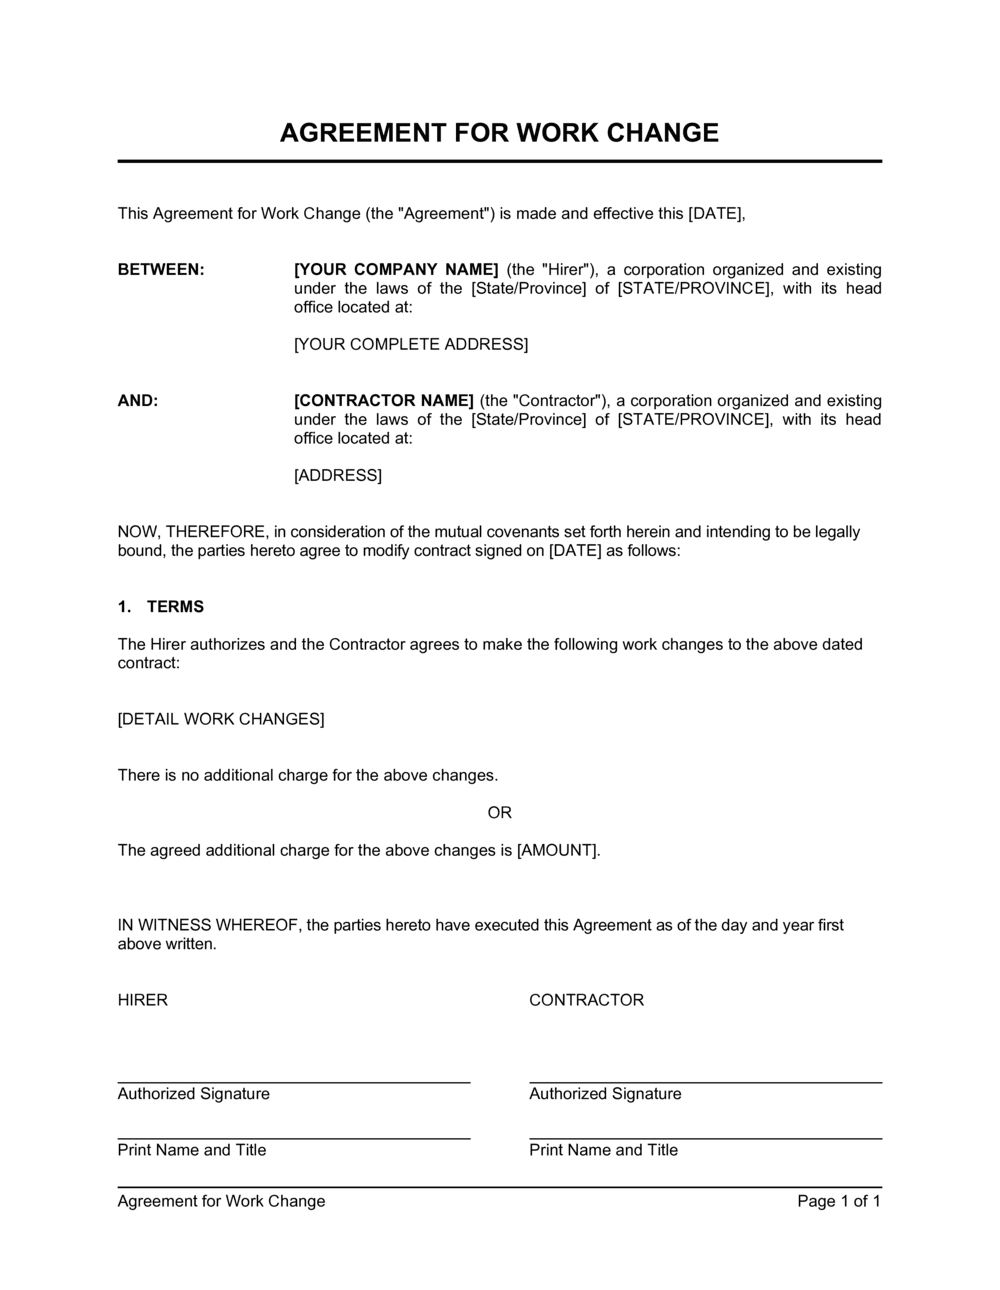 Business-in-a-Box's Agreement for Work Change Template